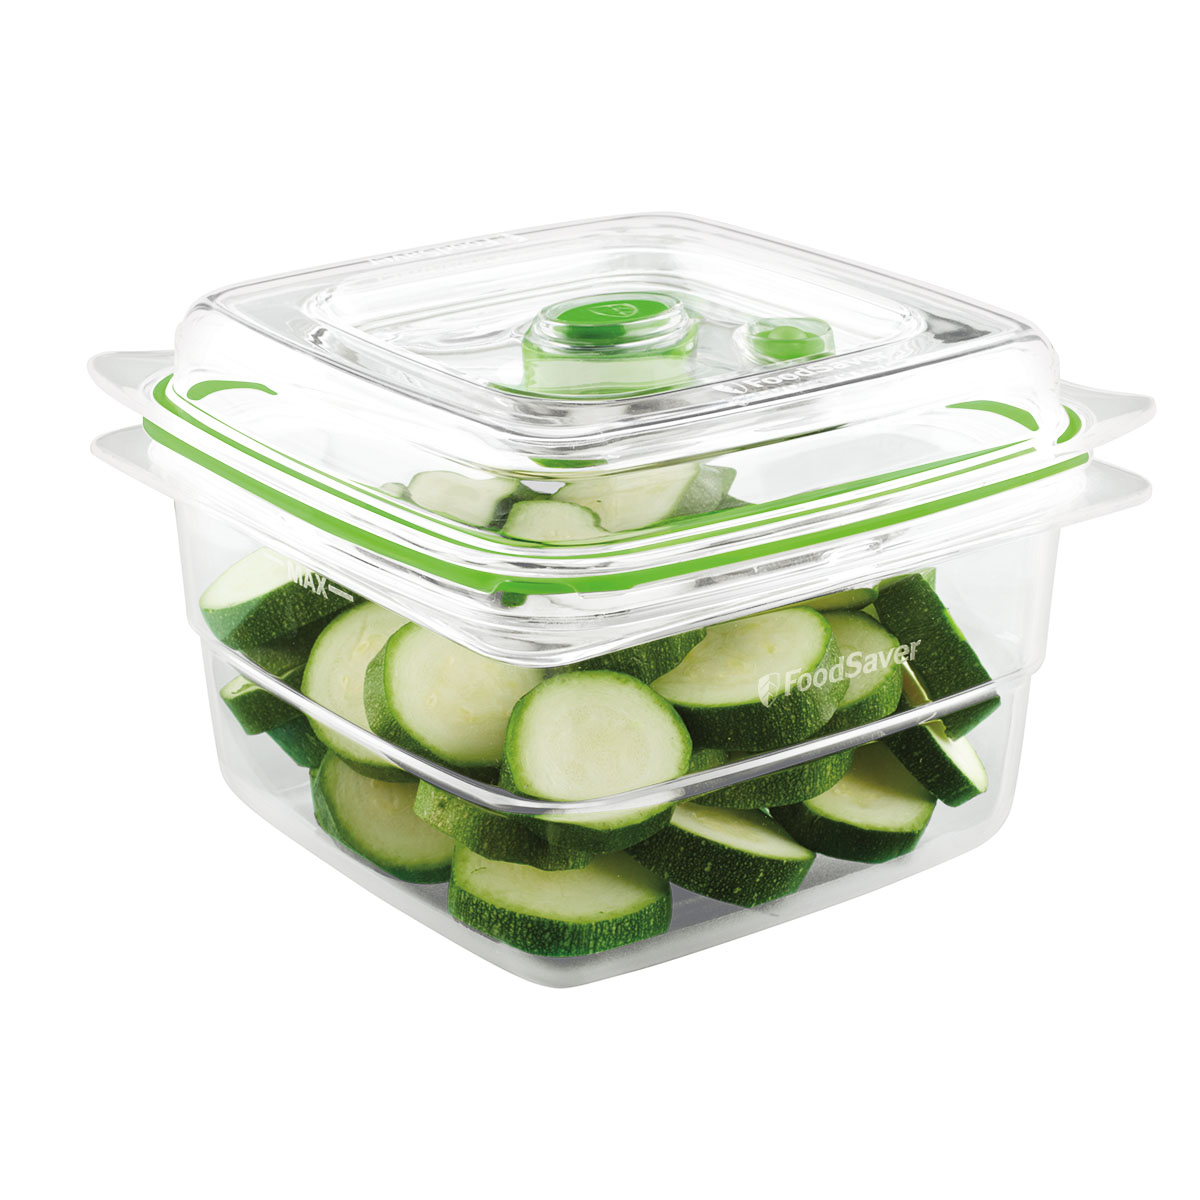 FoodSaver® Fresh Container, 5 Cup By Foodsaver